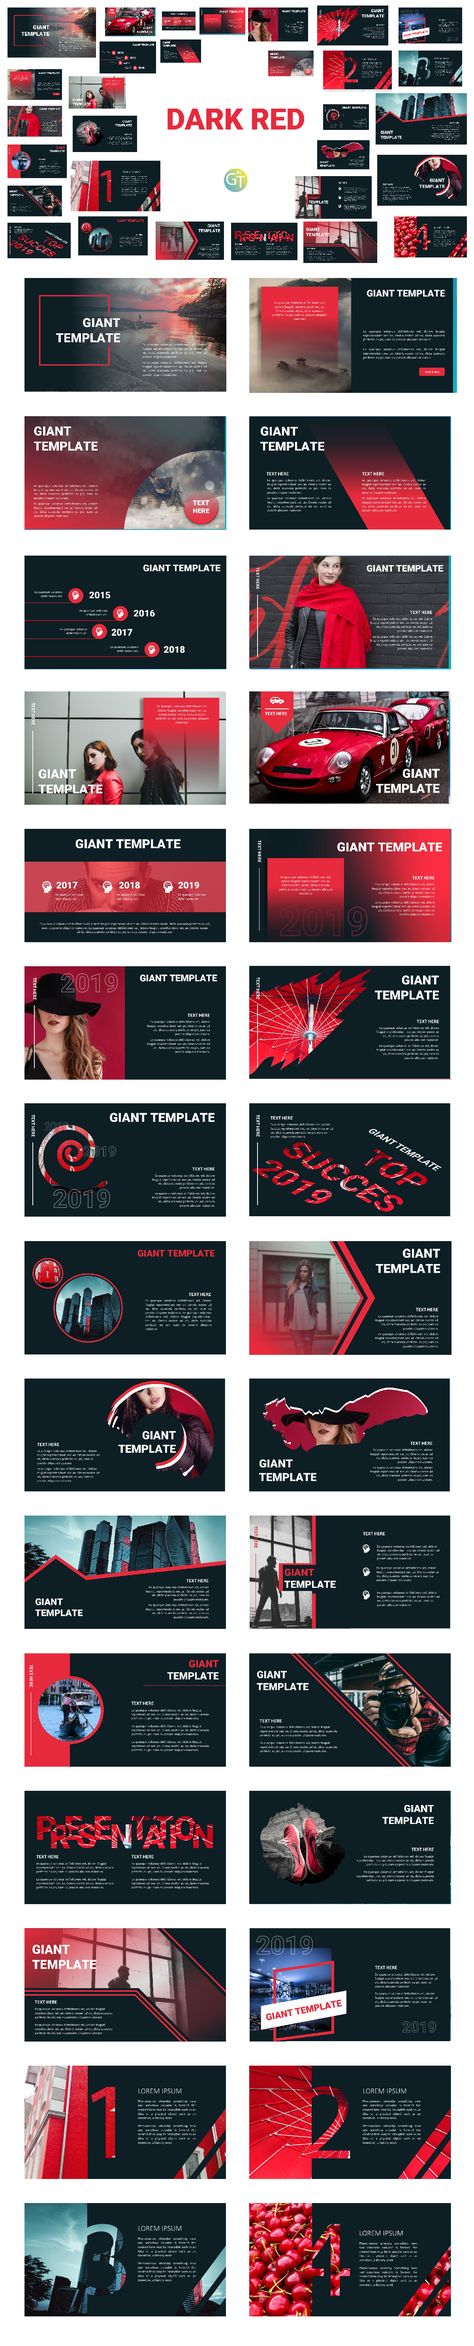 Dark Red - Template PTT Free Download